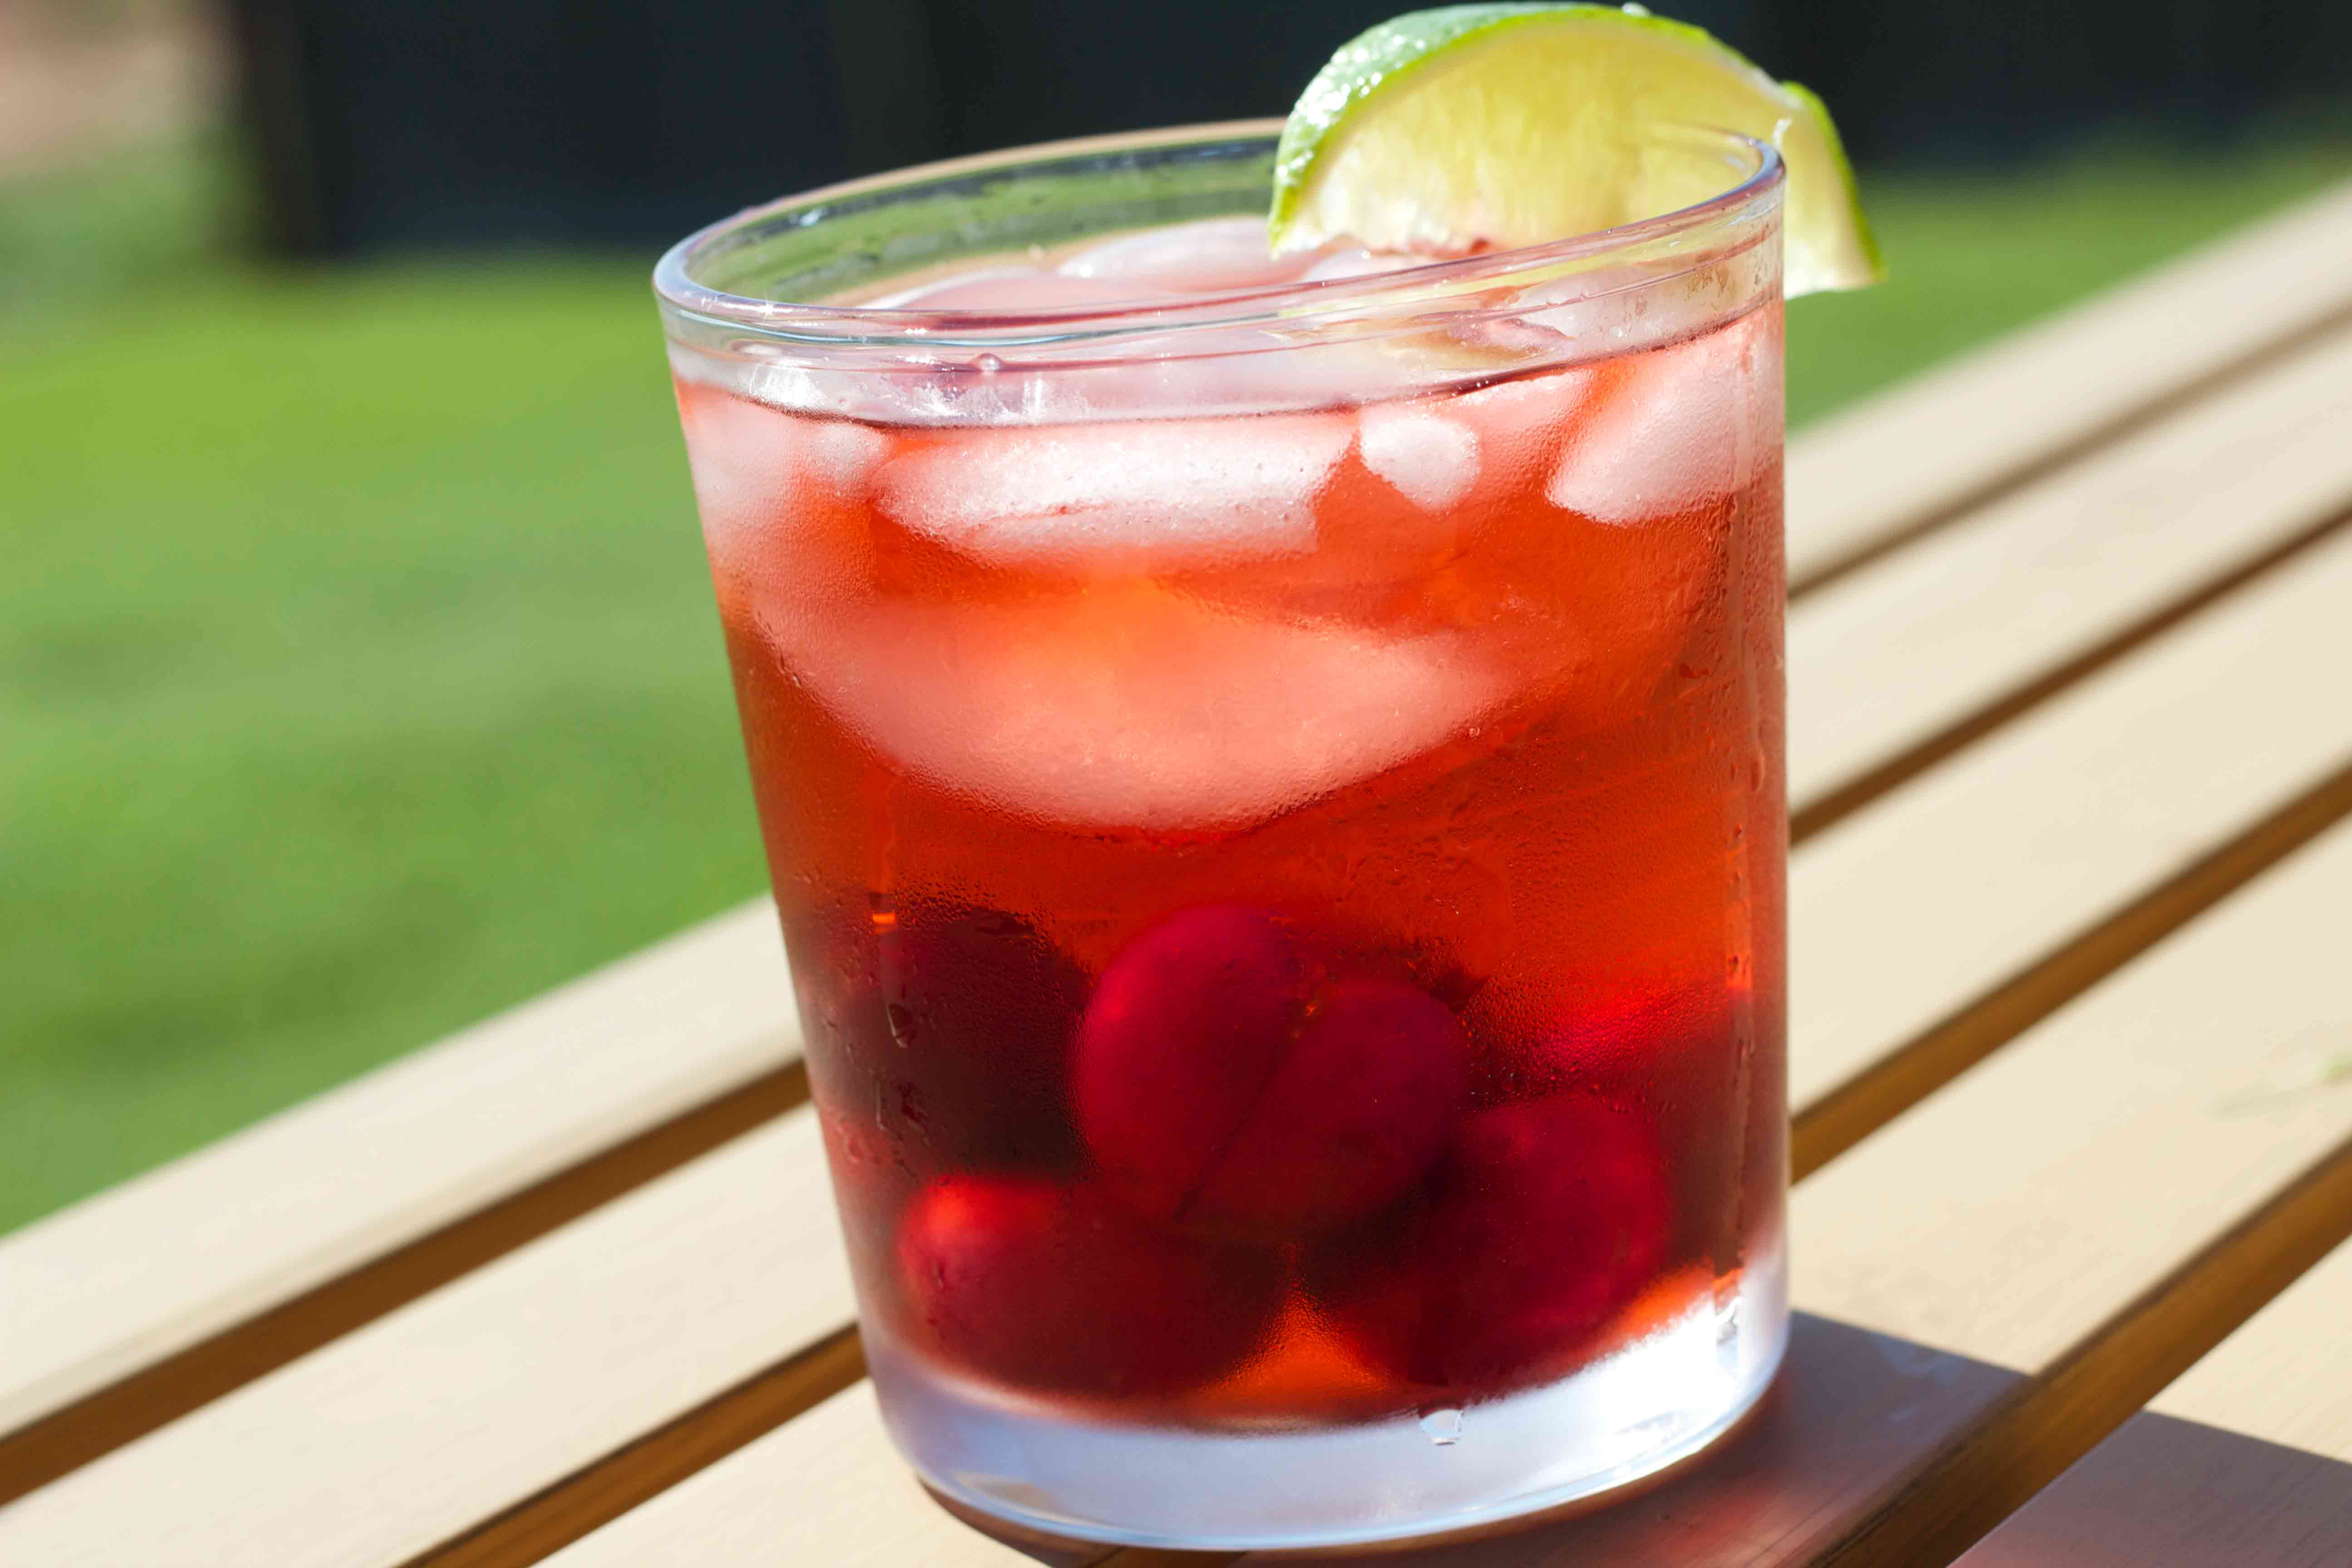 Cherry Blossom Inspired Drinks to Sip on this Spring